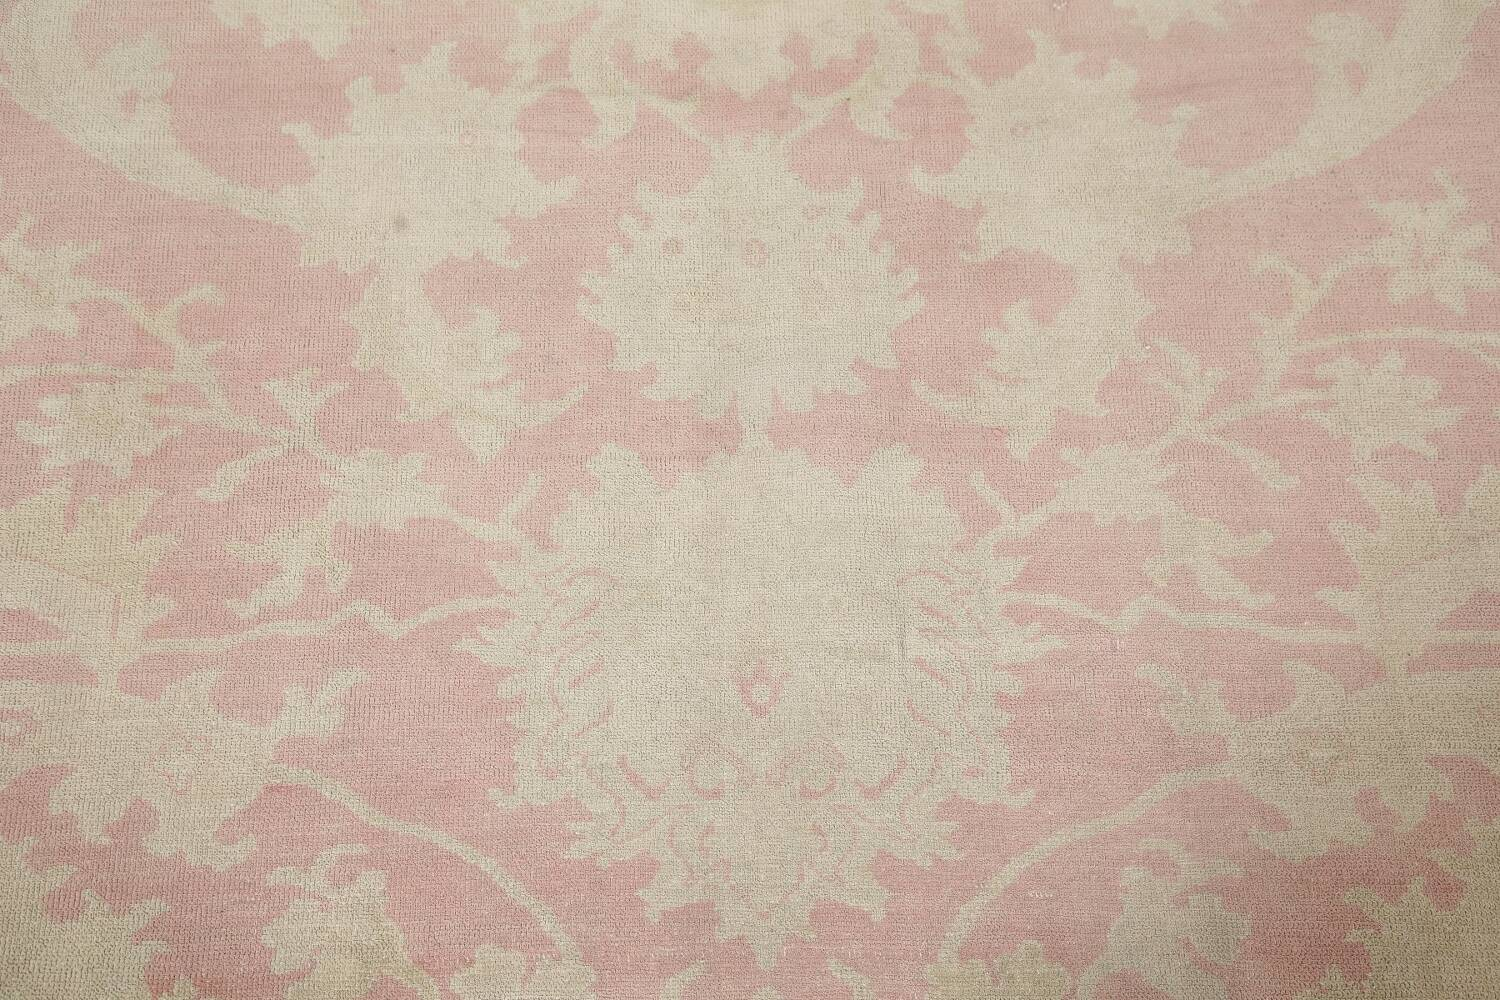 Antique Muted Floral Oushak Turkish Area Rug 8x10 image 11